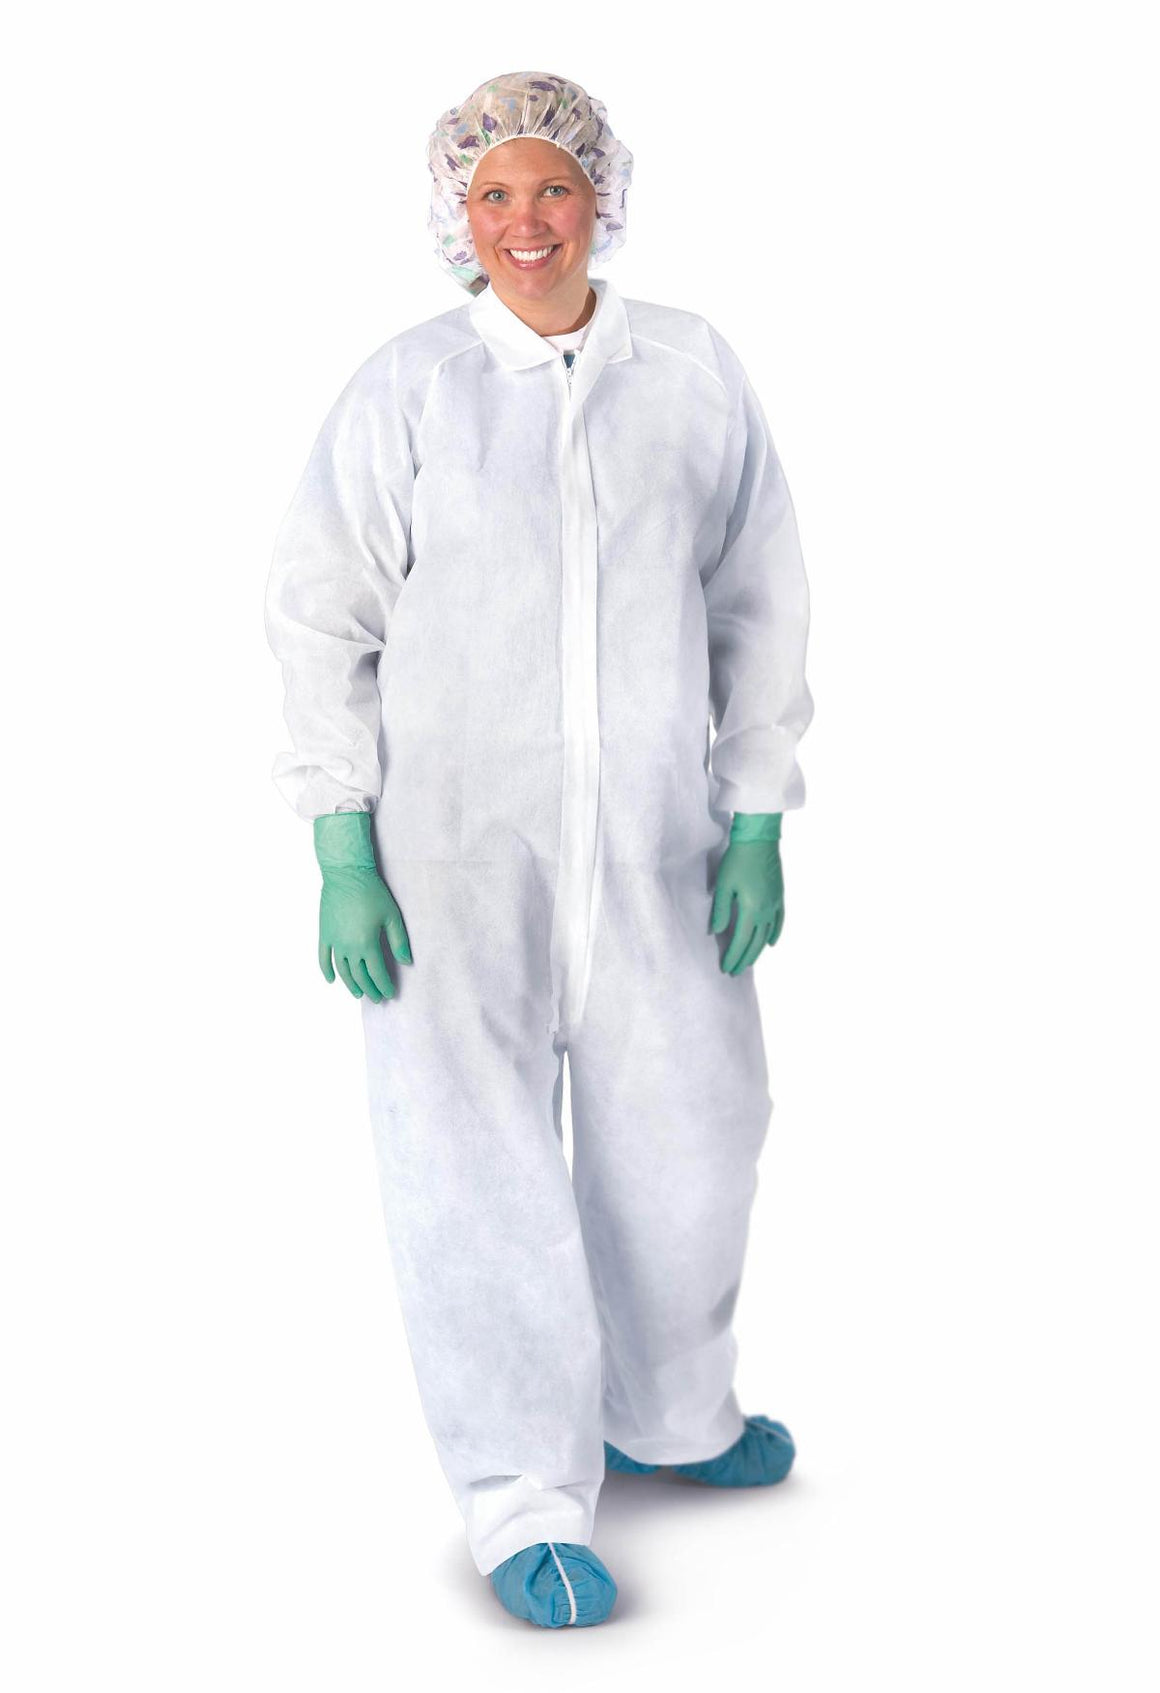 Heavyweight Spunbond Polypropylene Coveralls,White,X-Large, Case of 25